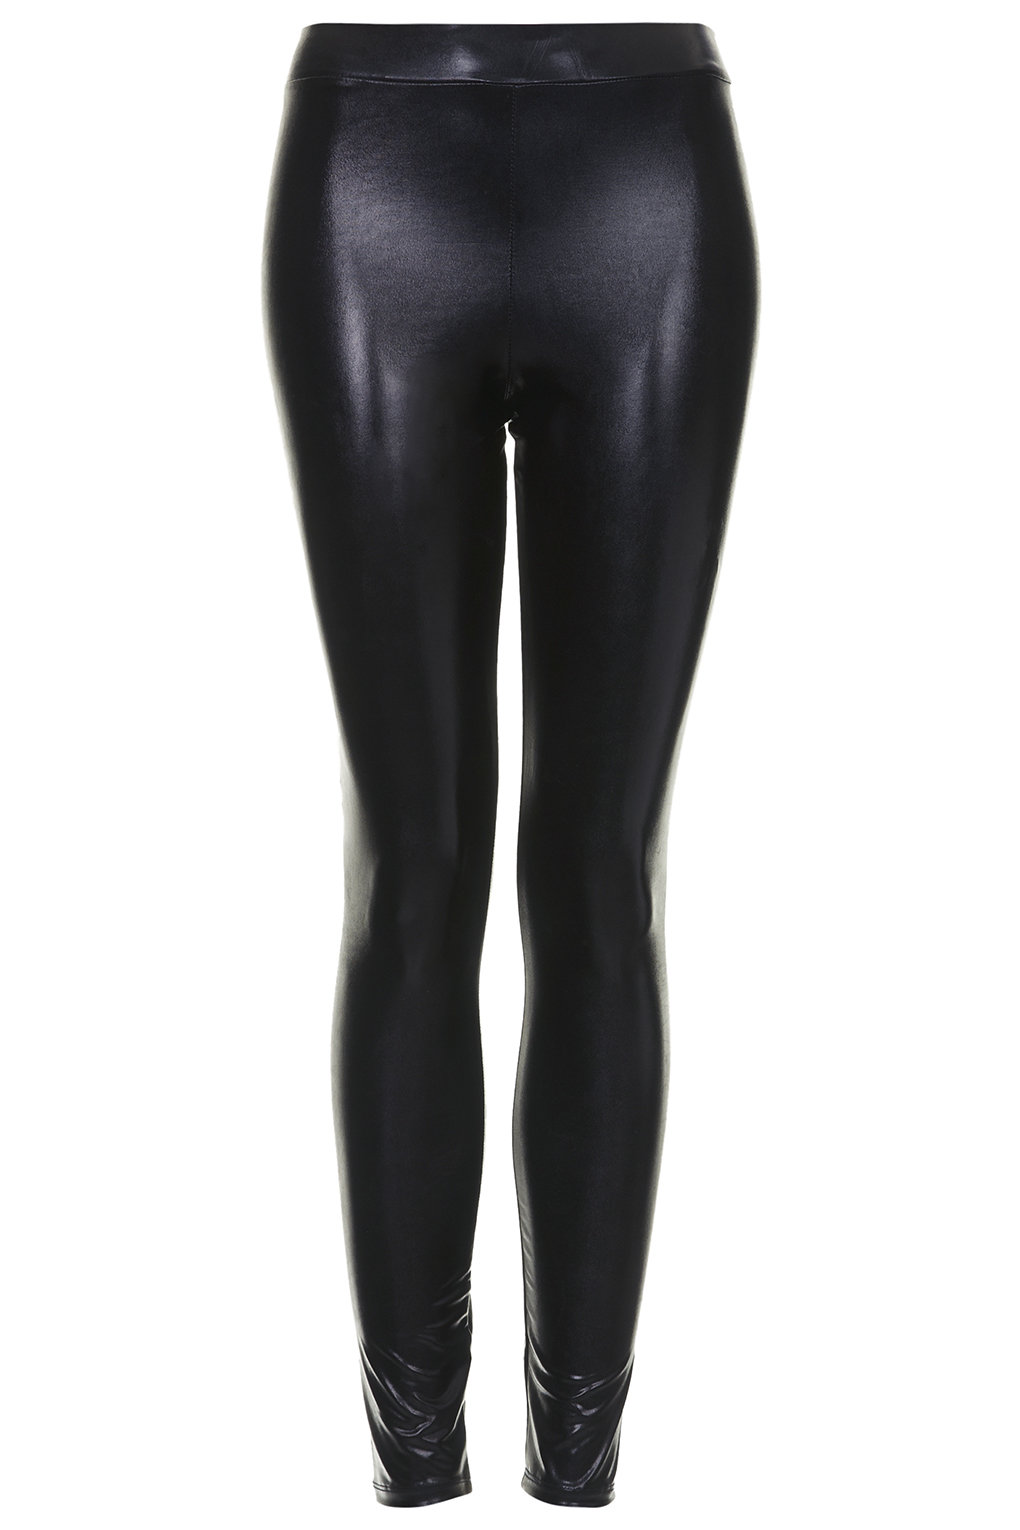 Shiny wetlook legging